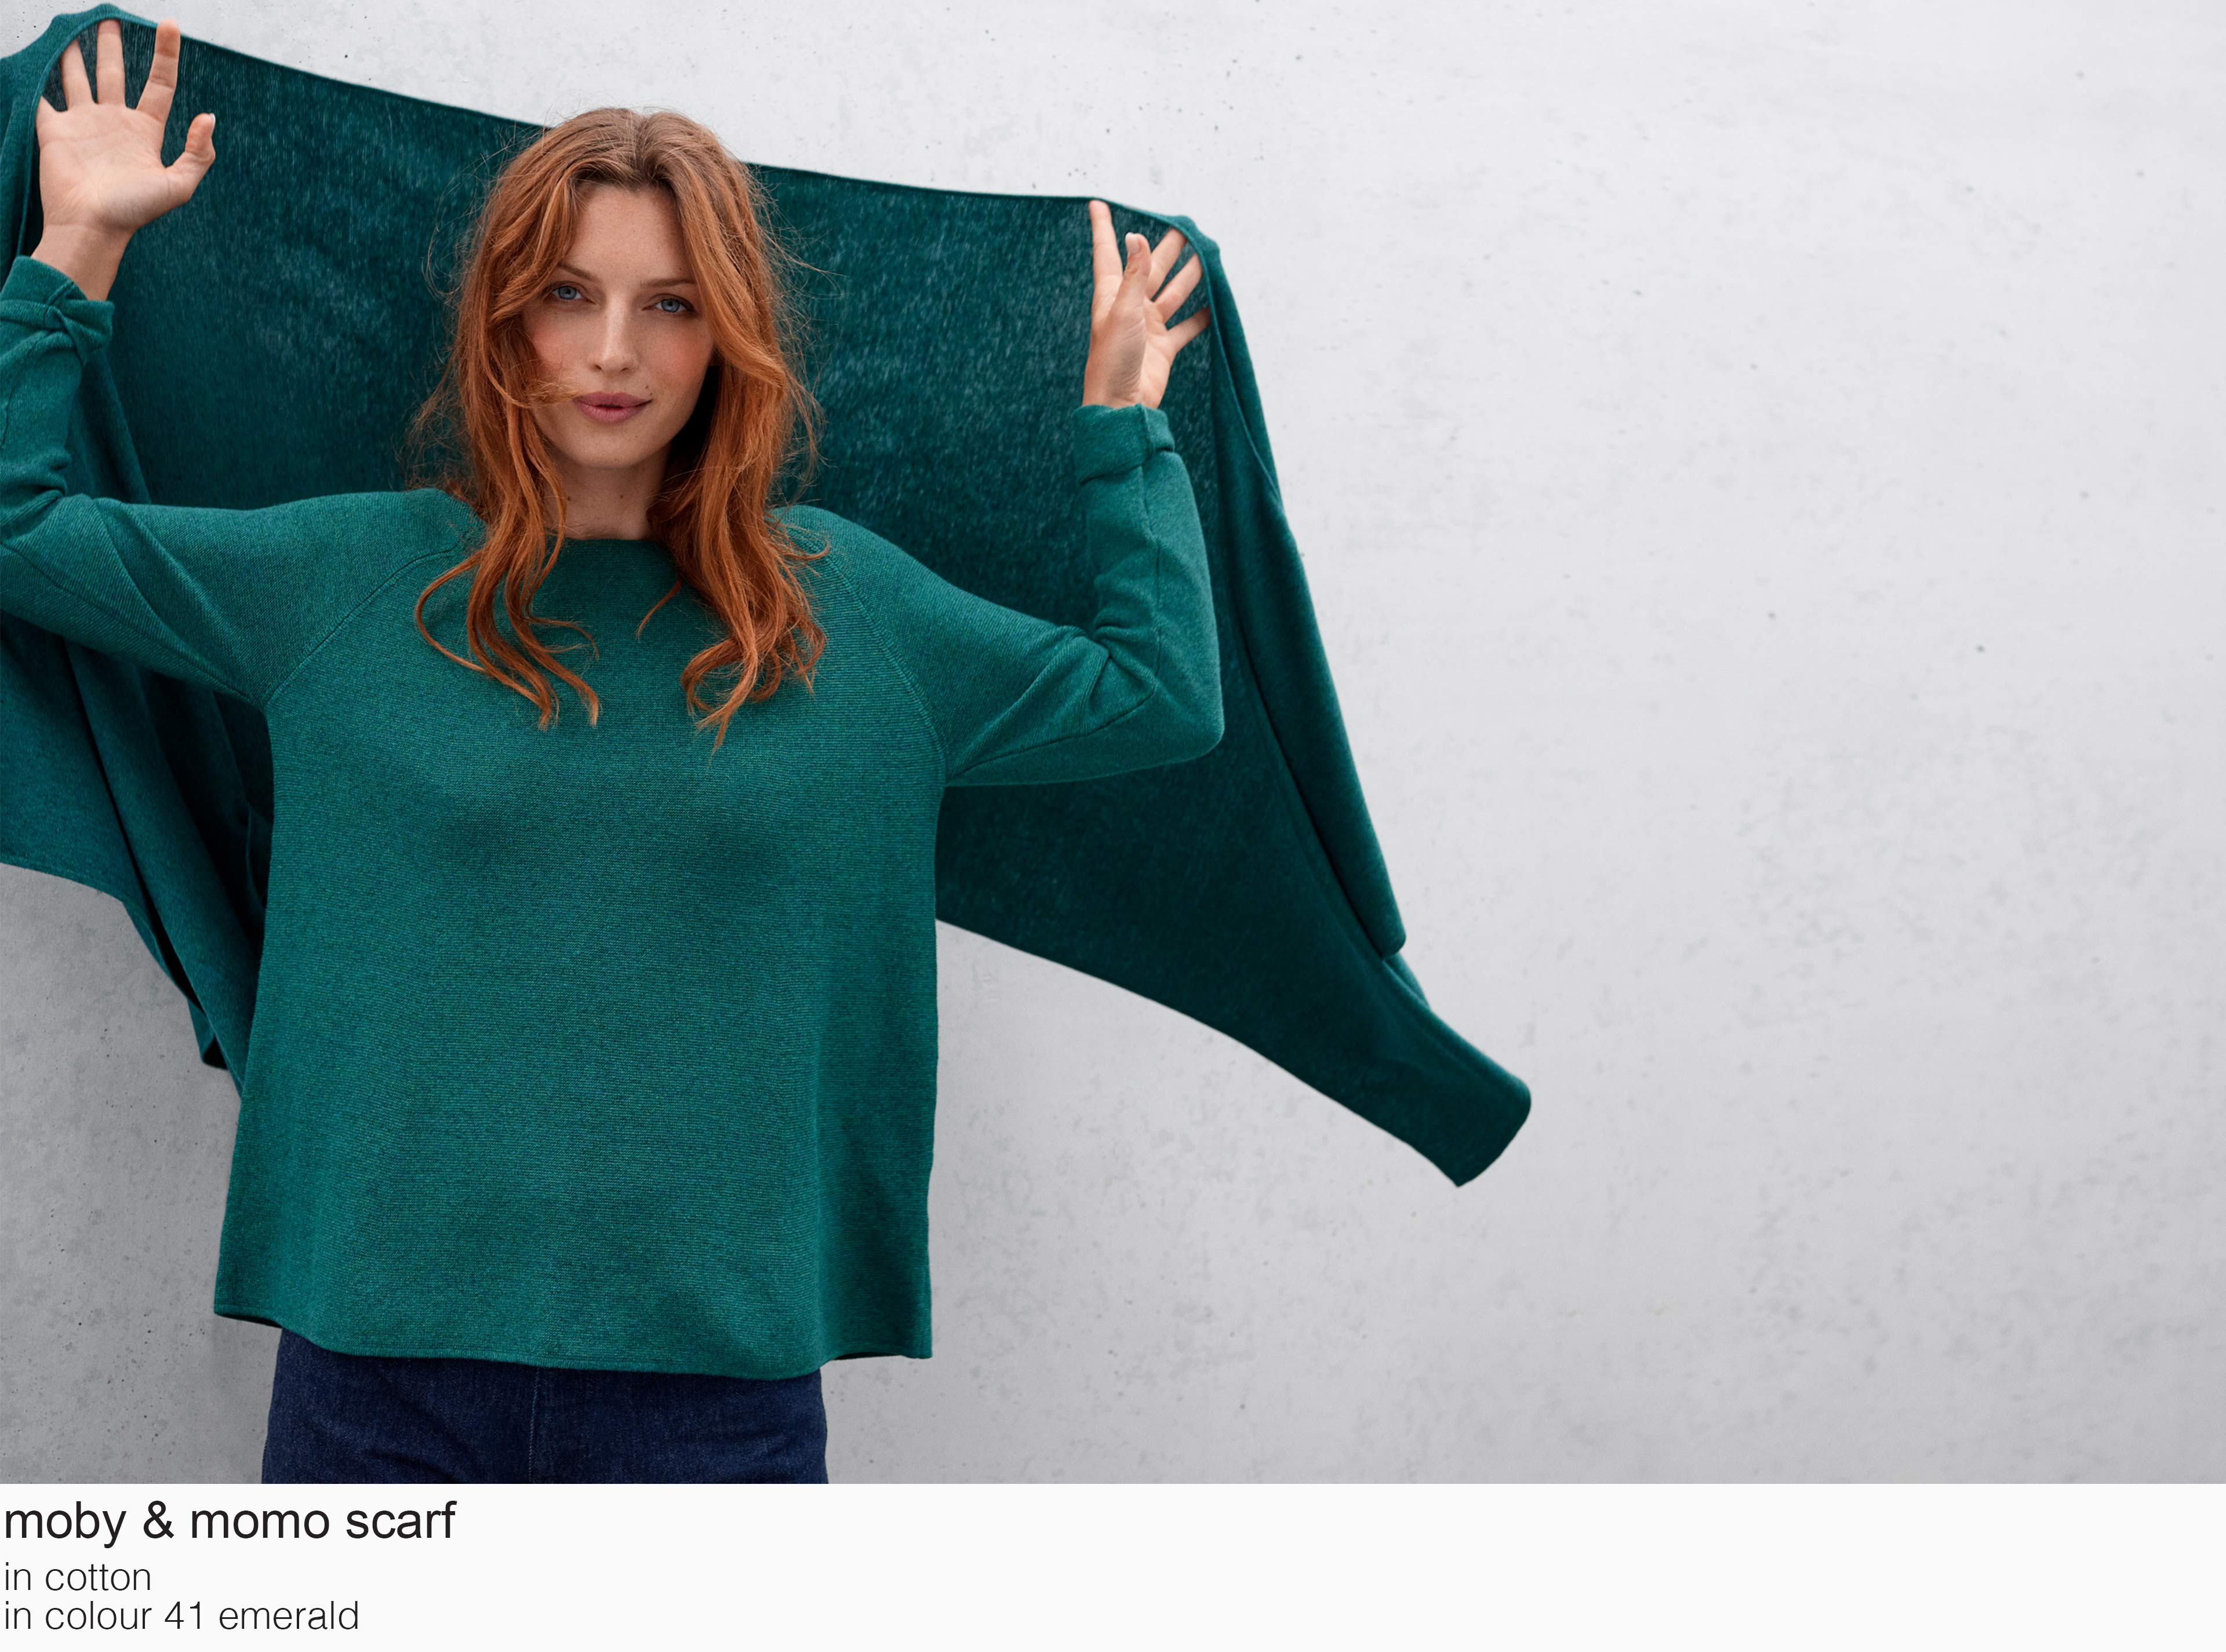 mansted moby momo cotton 41 emerald aw19 aw 2019 Knitwear quality knit multicoloured colour colourful cotton yak lambswool soft versatile feminine beautiful details fashion favourite autumn winter bright colours pullover jumper t-shirt cardigan jacket strik kvalitetsstrik farverig bluser trøjer feminin strik til kvinder